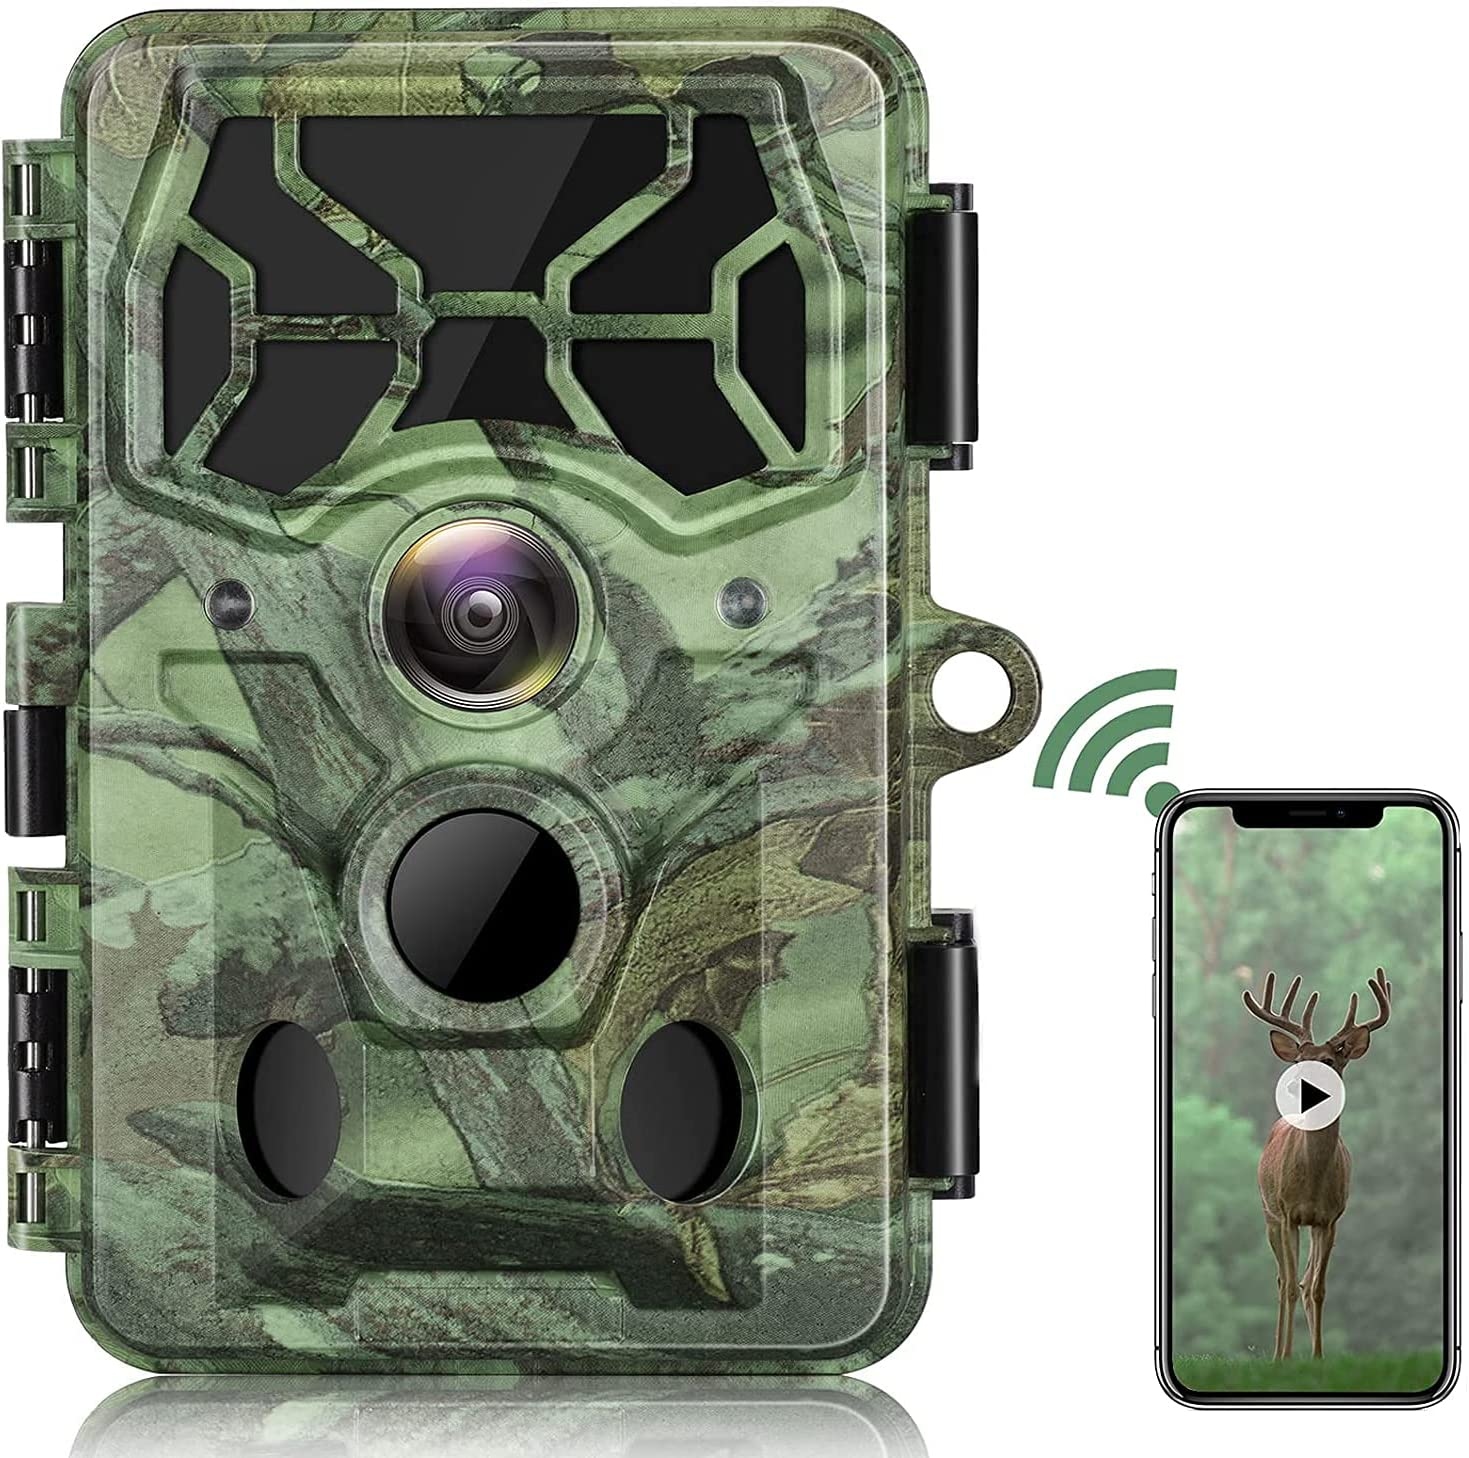 4K Native WiFi Trail Camera-30MP Game Selling rankings Bluetooth w Camera Max 41% OFF Hunting